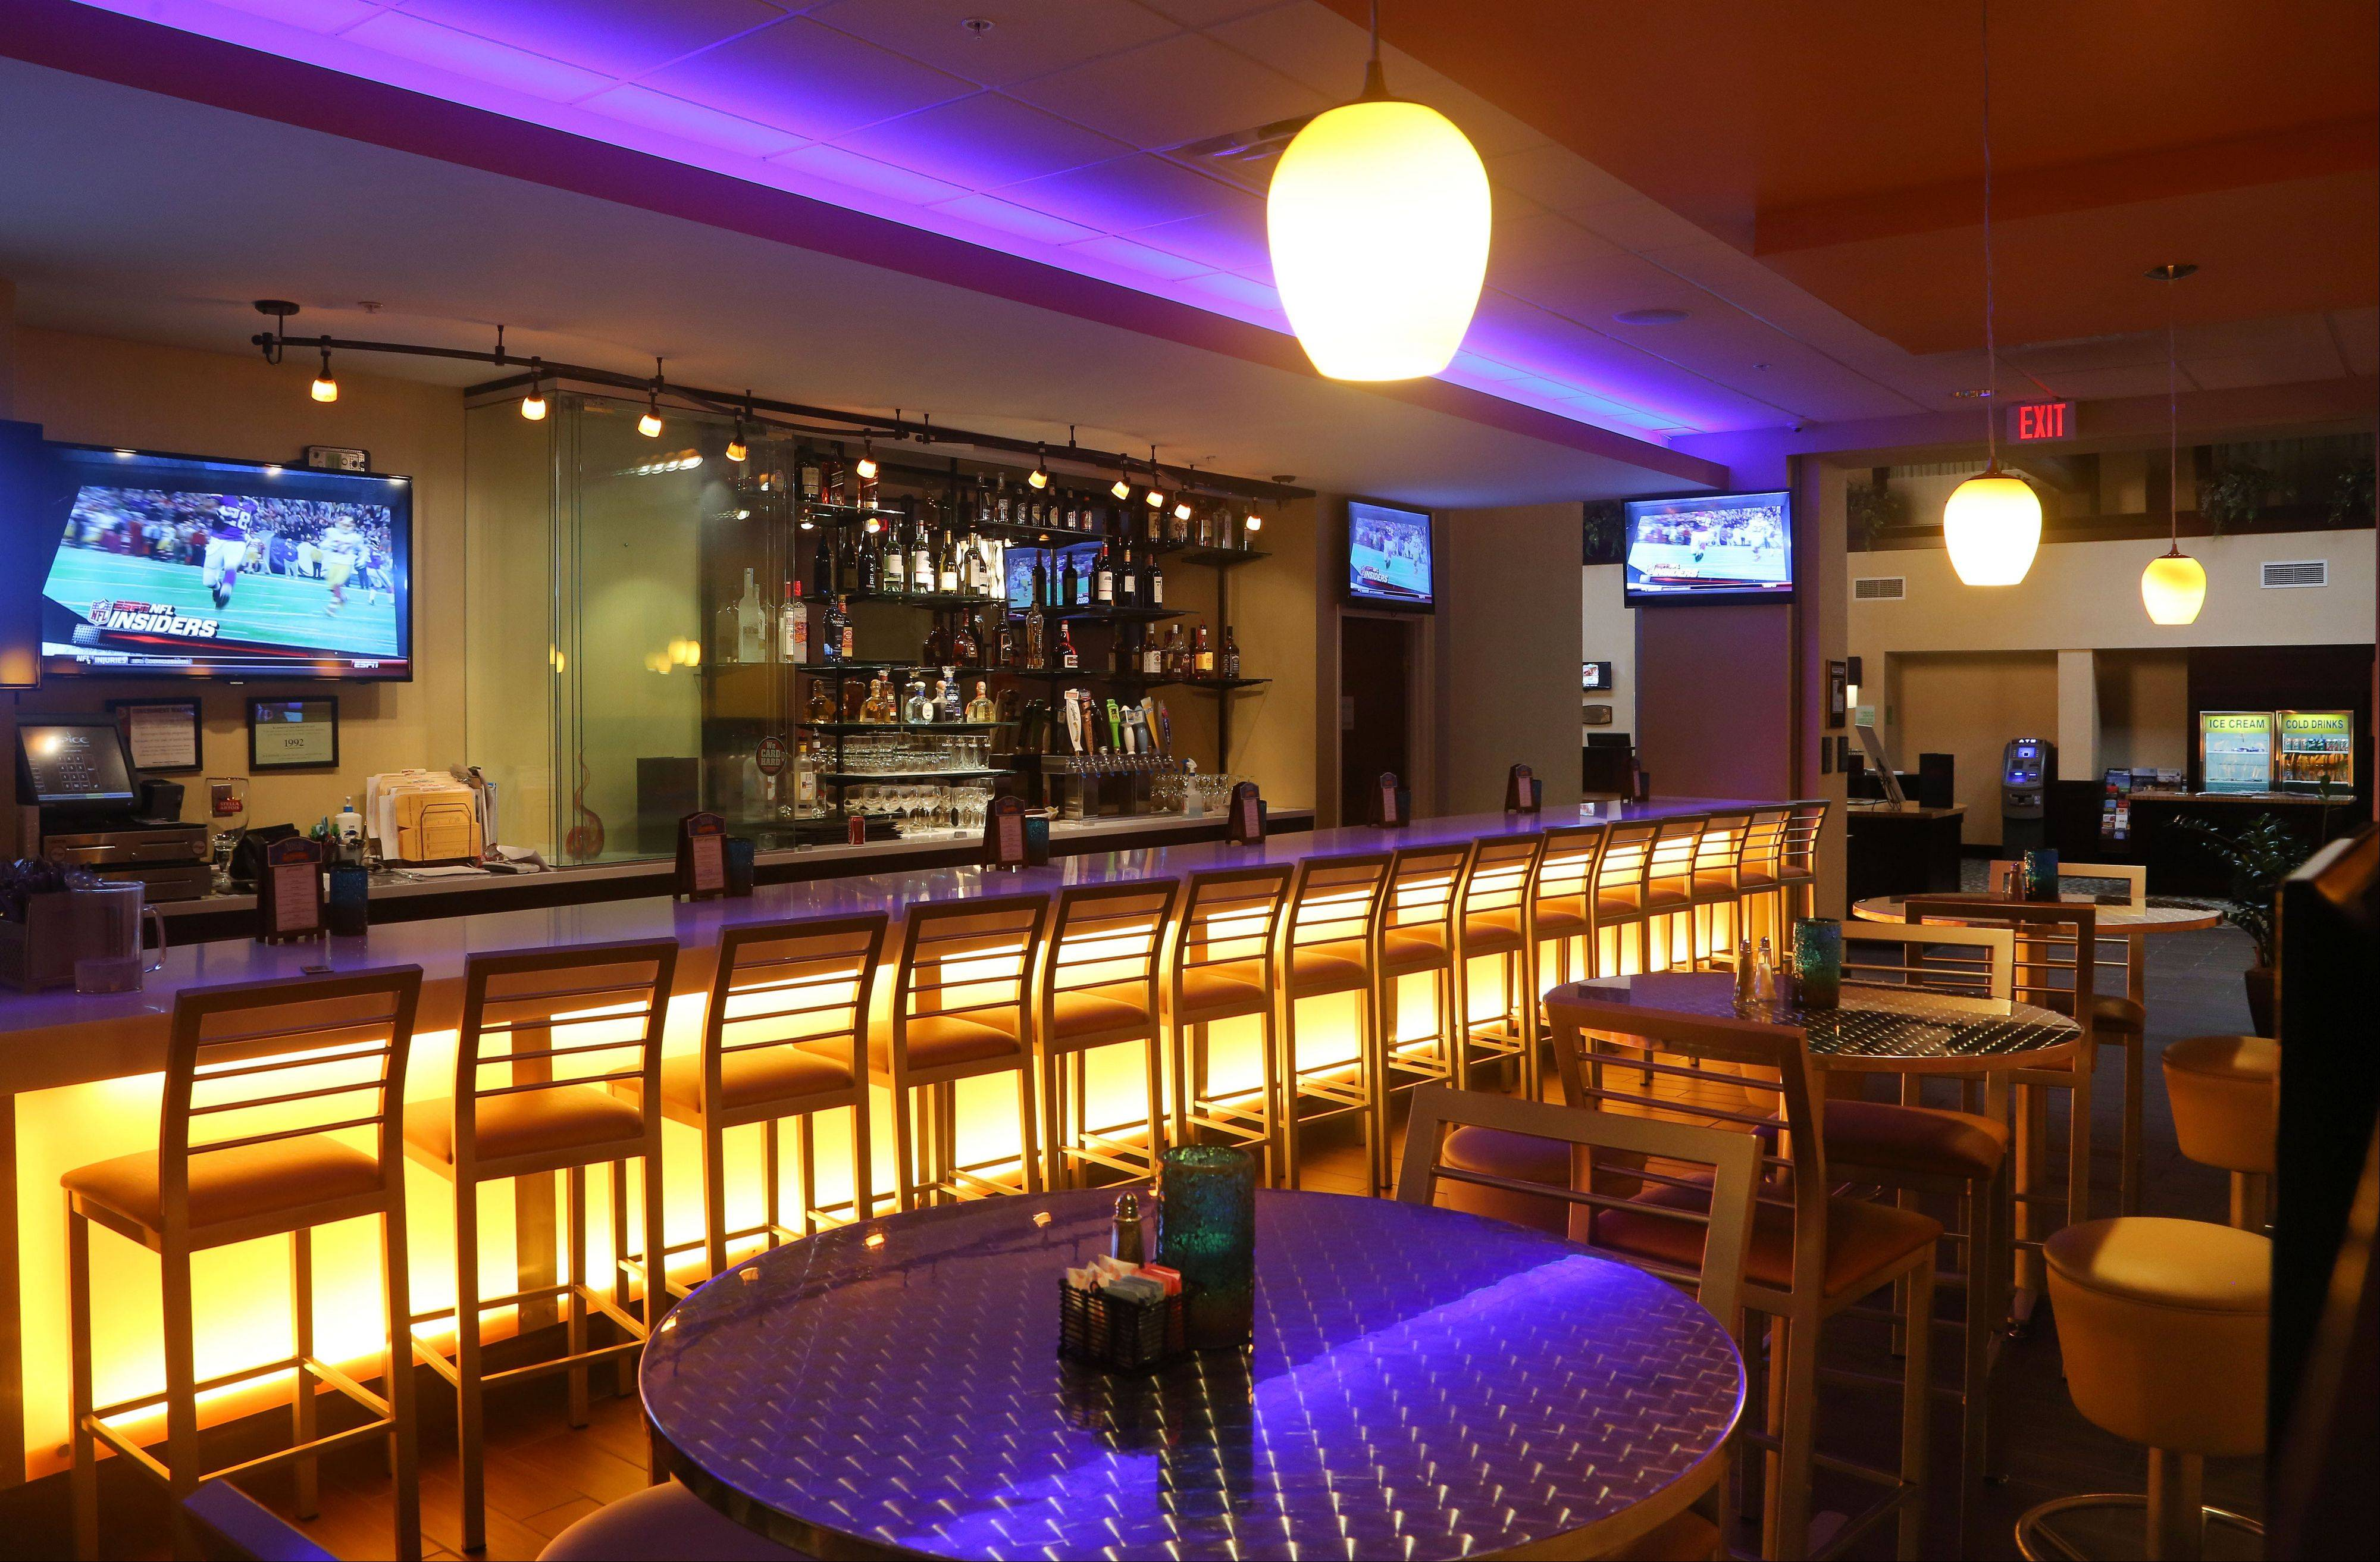 Craft beers are among the drink options at Spice Restaurant and Lounge in Gurnee.